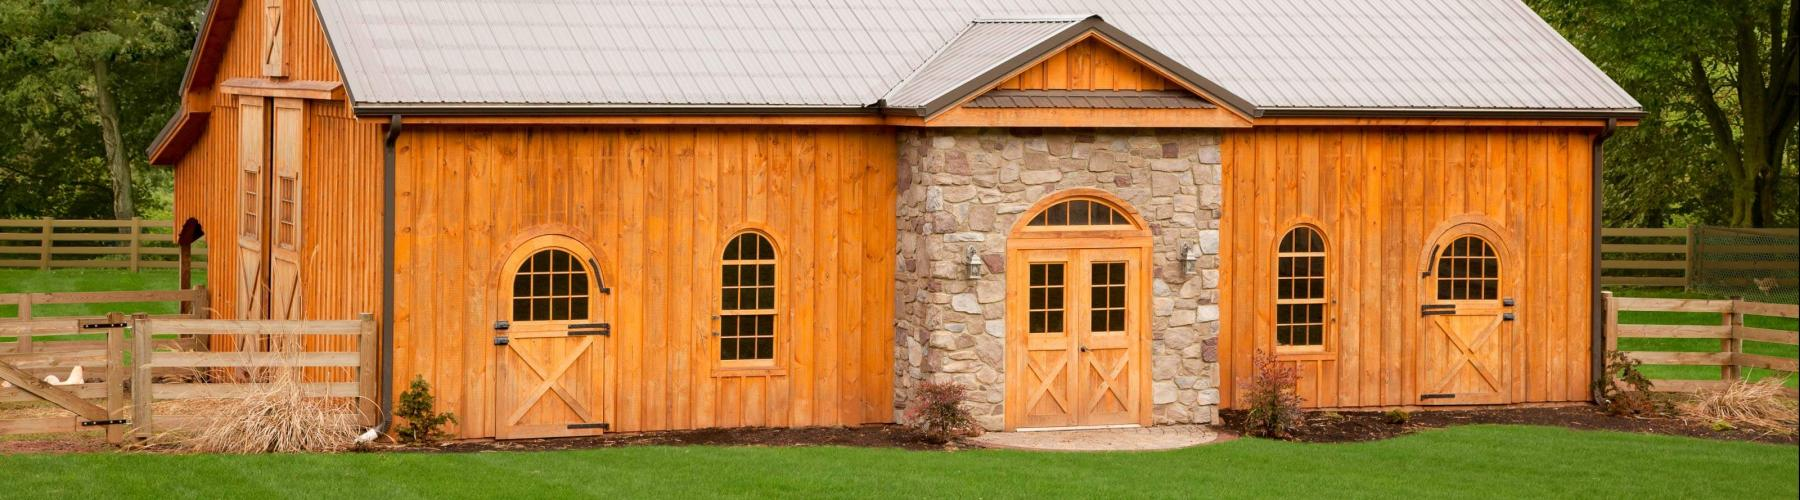 Horse barn built by Stable Hollow Construction